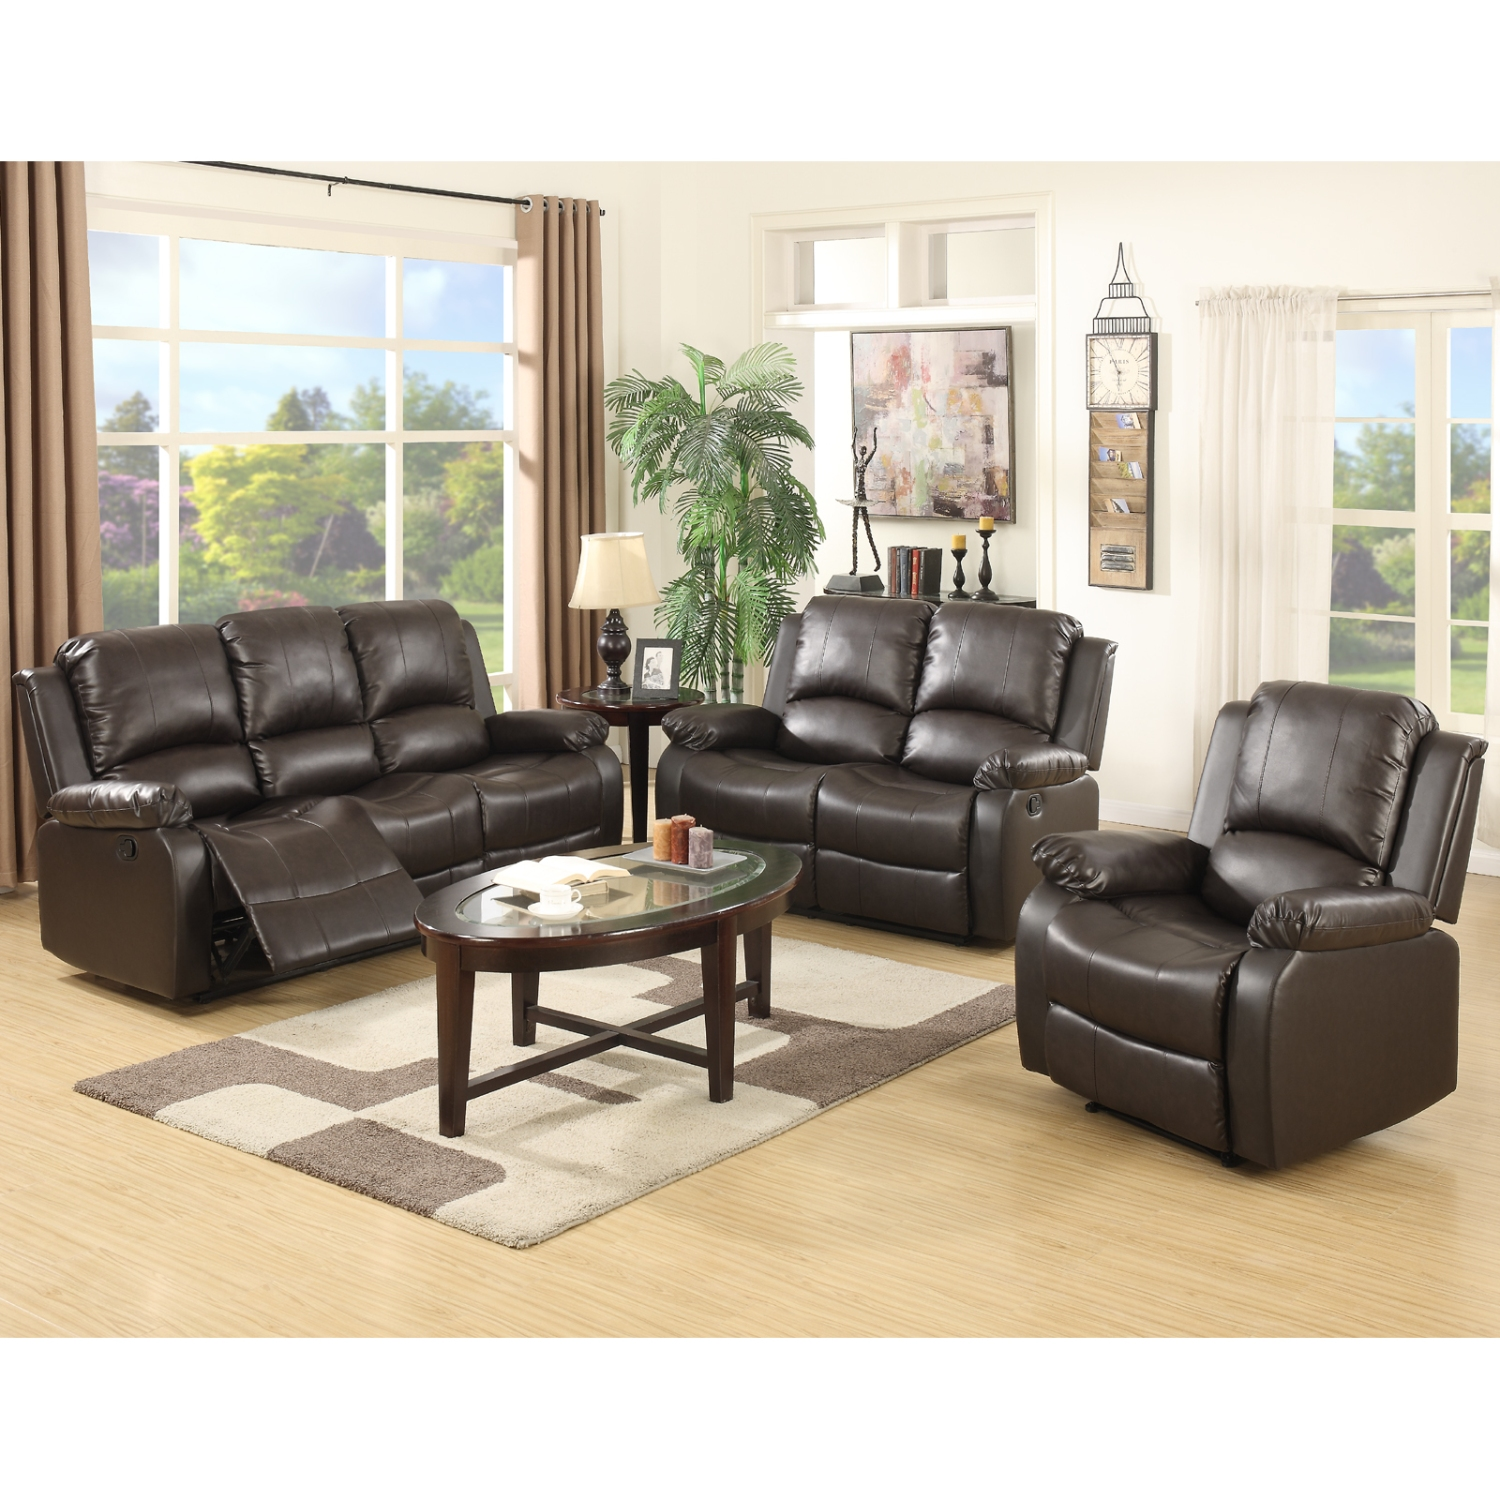 Magnificent Details About 3 2 1 Sofa Set Loveseat Couch Recliner Leather Living Room Furniture Black Andrewgaddart Wooden Chair Designs For Living Room Andrewgaddartcom